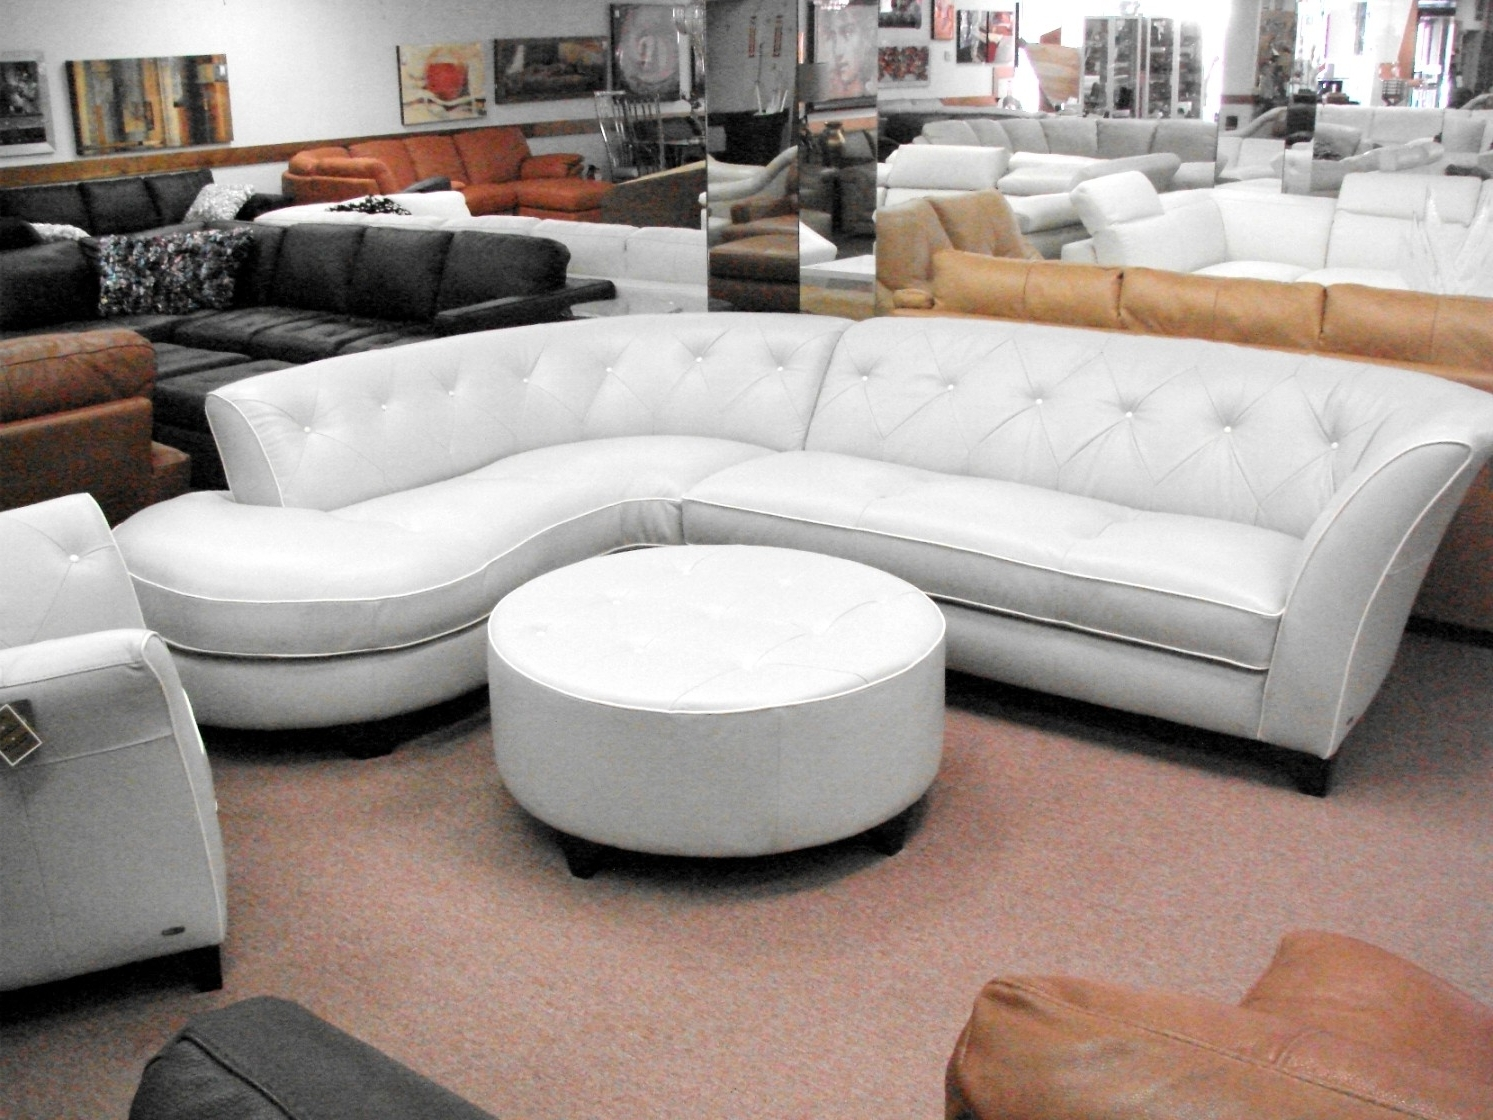 Natuzzi Sectional Sofas Within Favorite Sectional Sofa Design: Wonderful Natuzzi Sectional Sofa Italian (View 20 of 20)